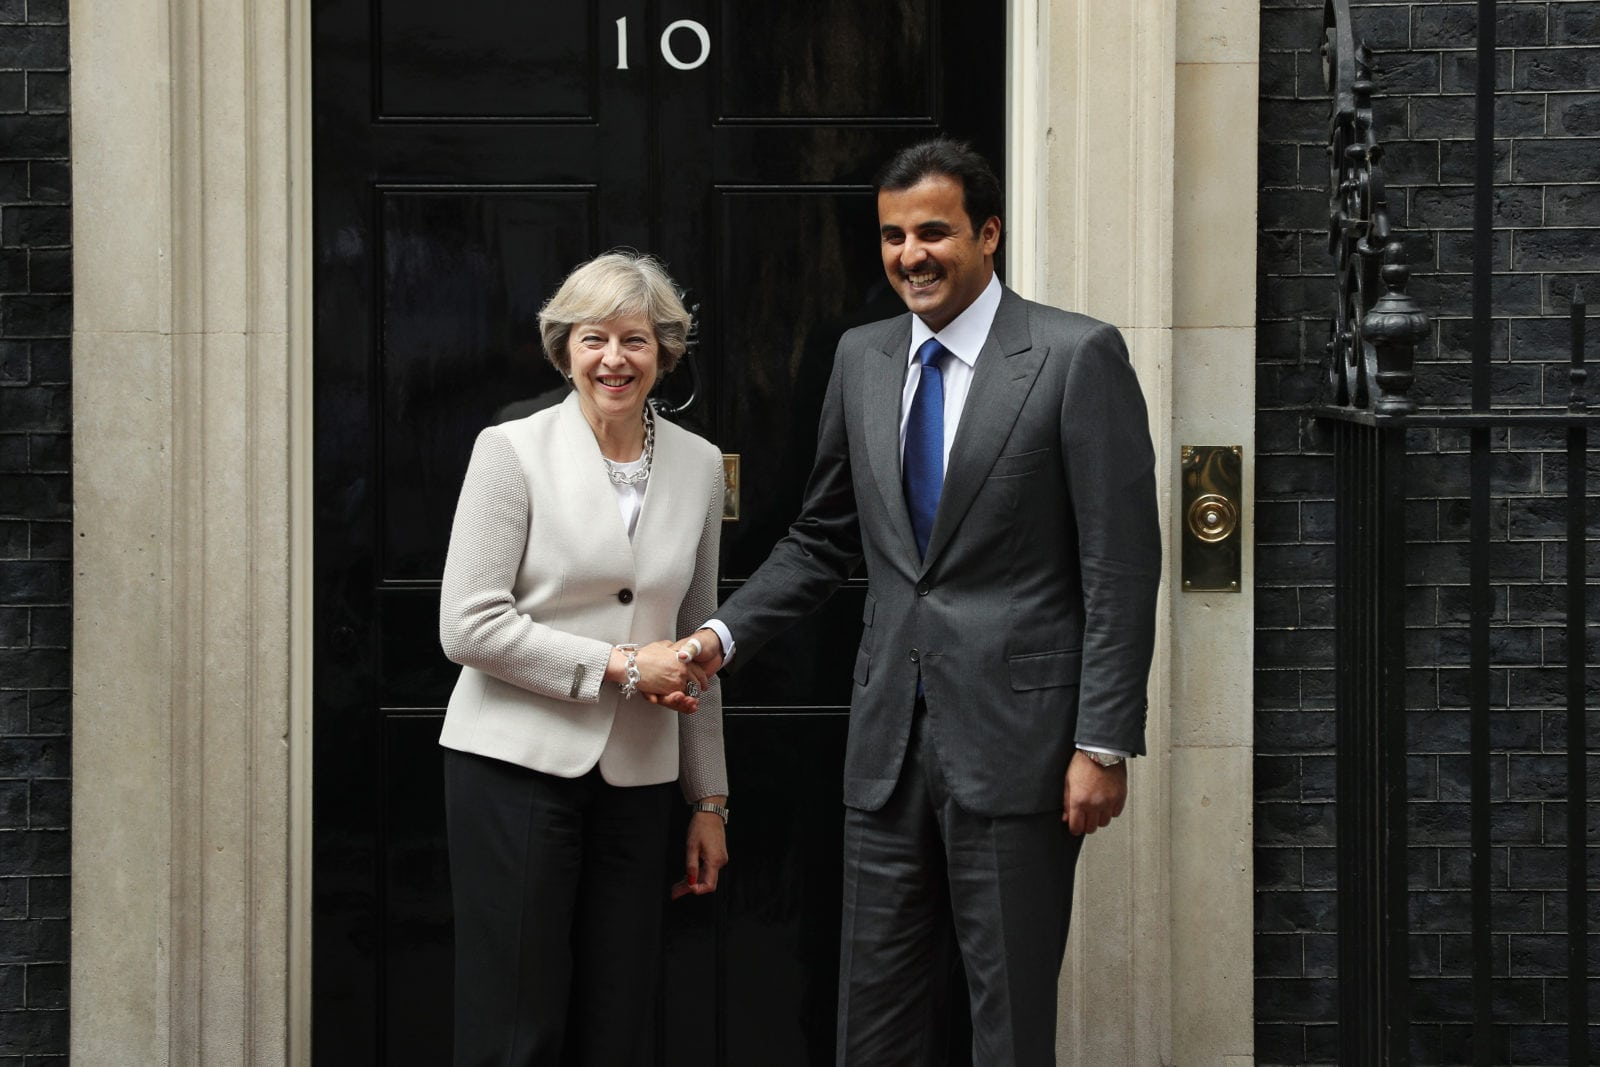 pinknews.co.uk - Sofia Lotto Persio - Theresa May urged to advocate for LGBT people in Qatar during Emir's visit